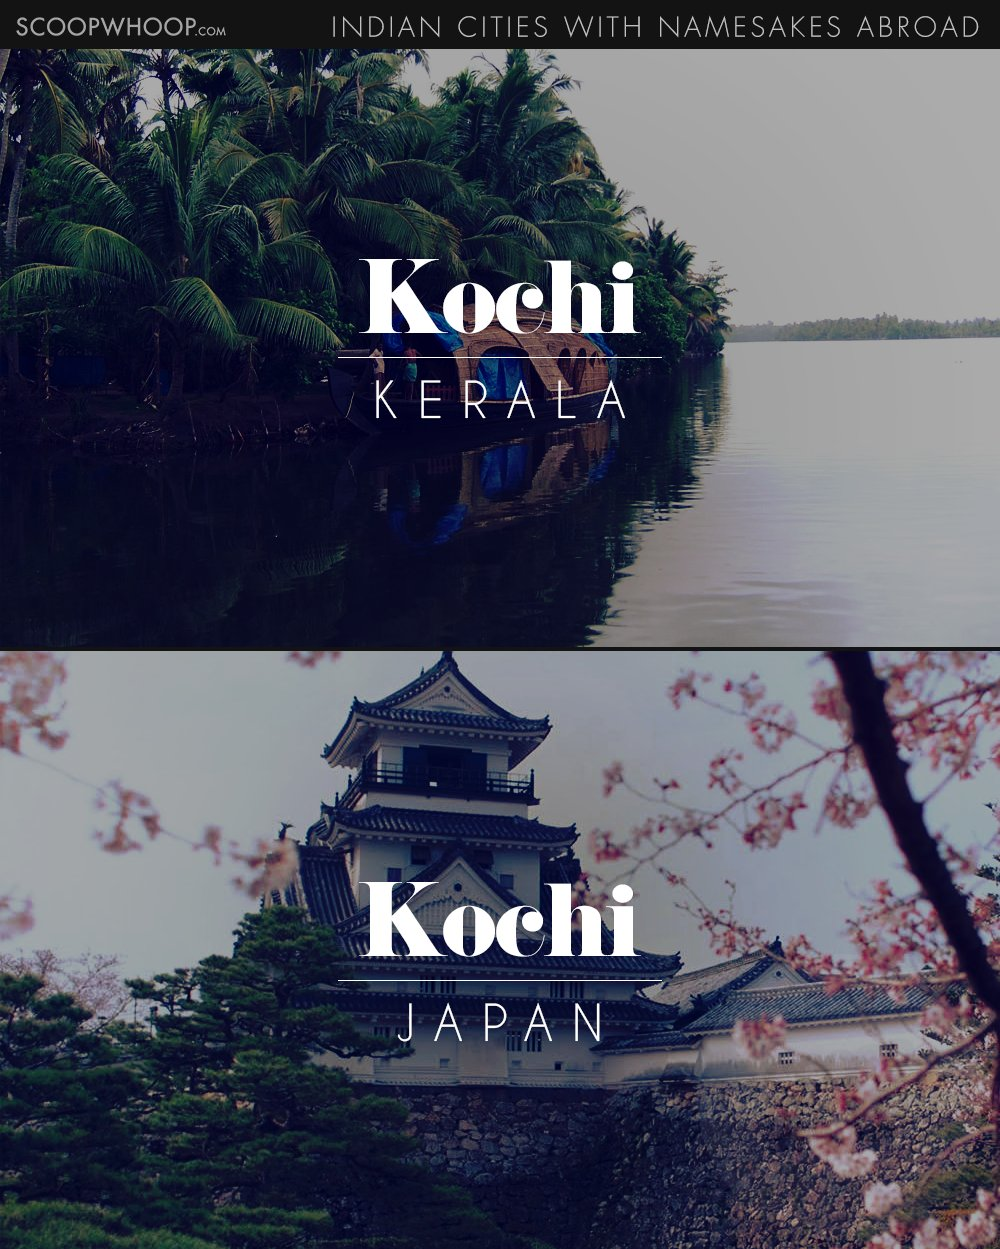 It Has A Namesake In Japan Thats Quite Tourist Attraction What These Two Cities Hold On Common Ground Other Than Their Names Is Love For